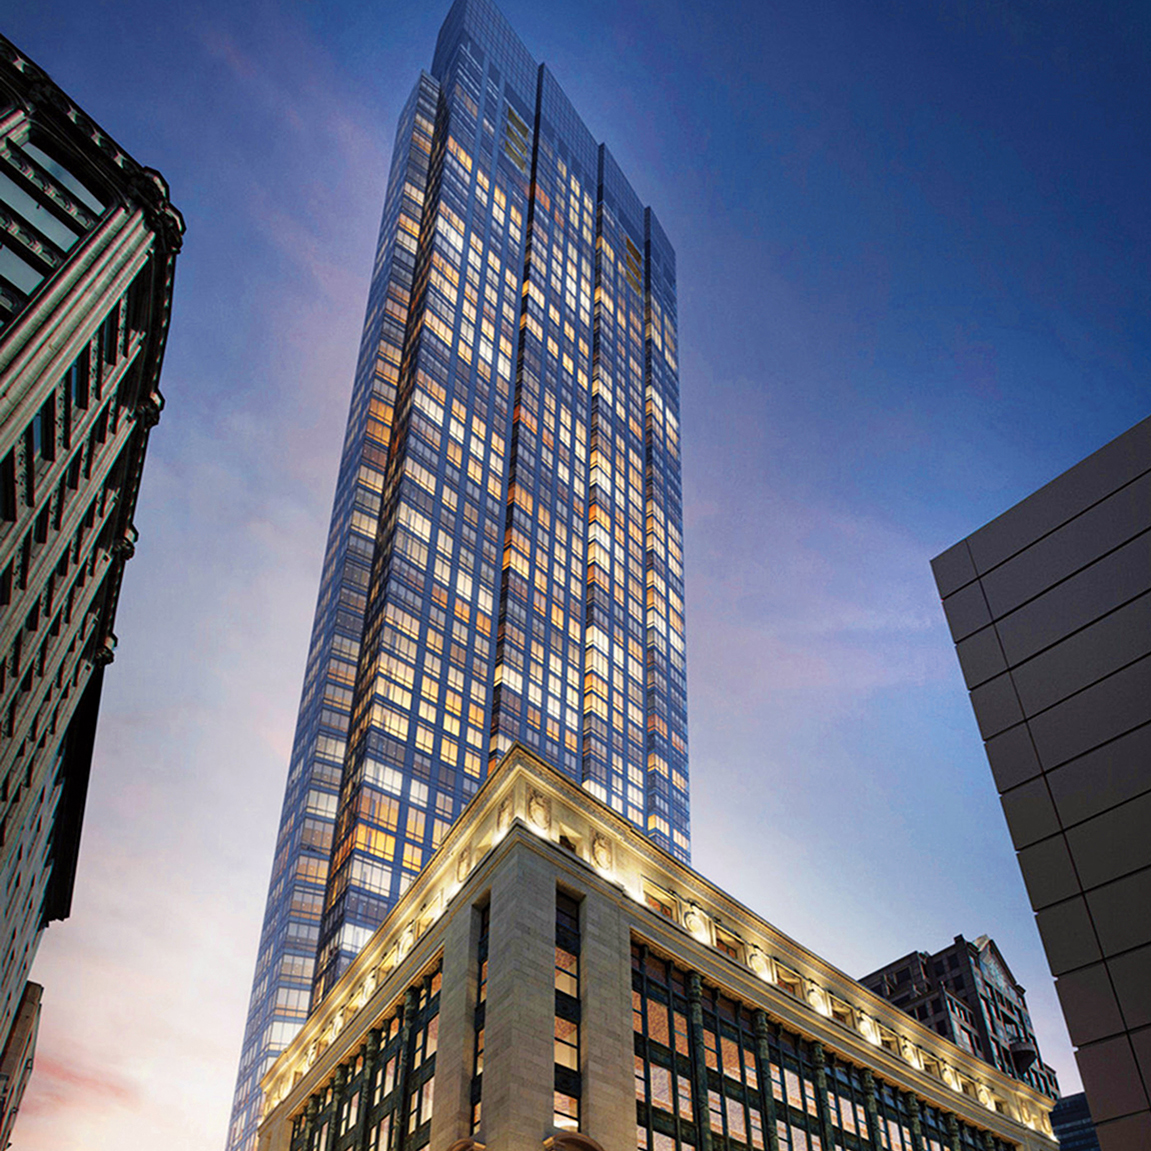 Best Places In The World To Live 2015: Best Places To Live 2015: Ultra-Luxe In The €�Burbs